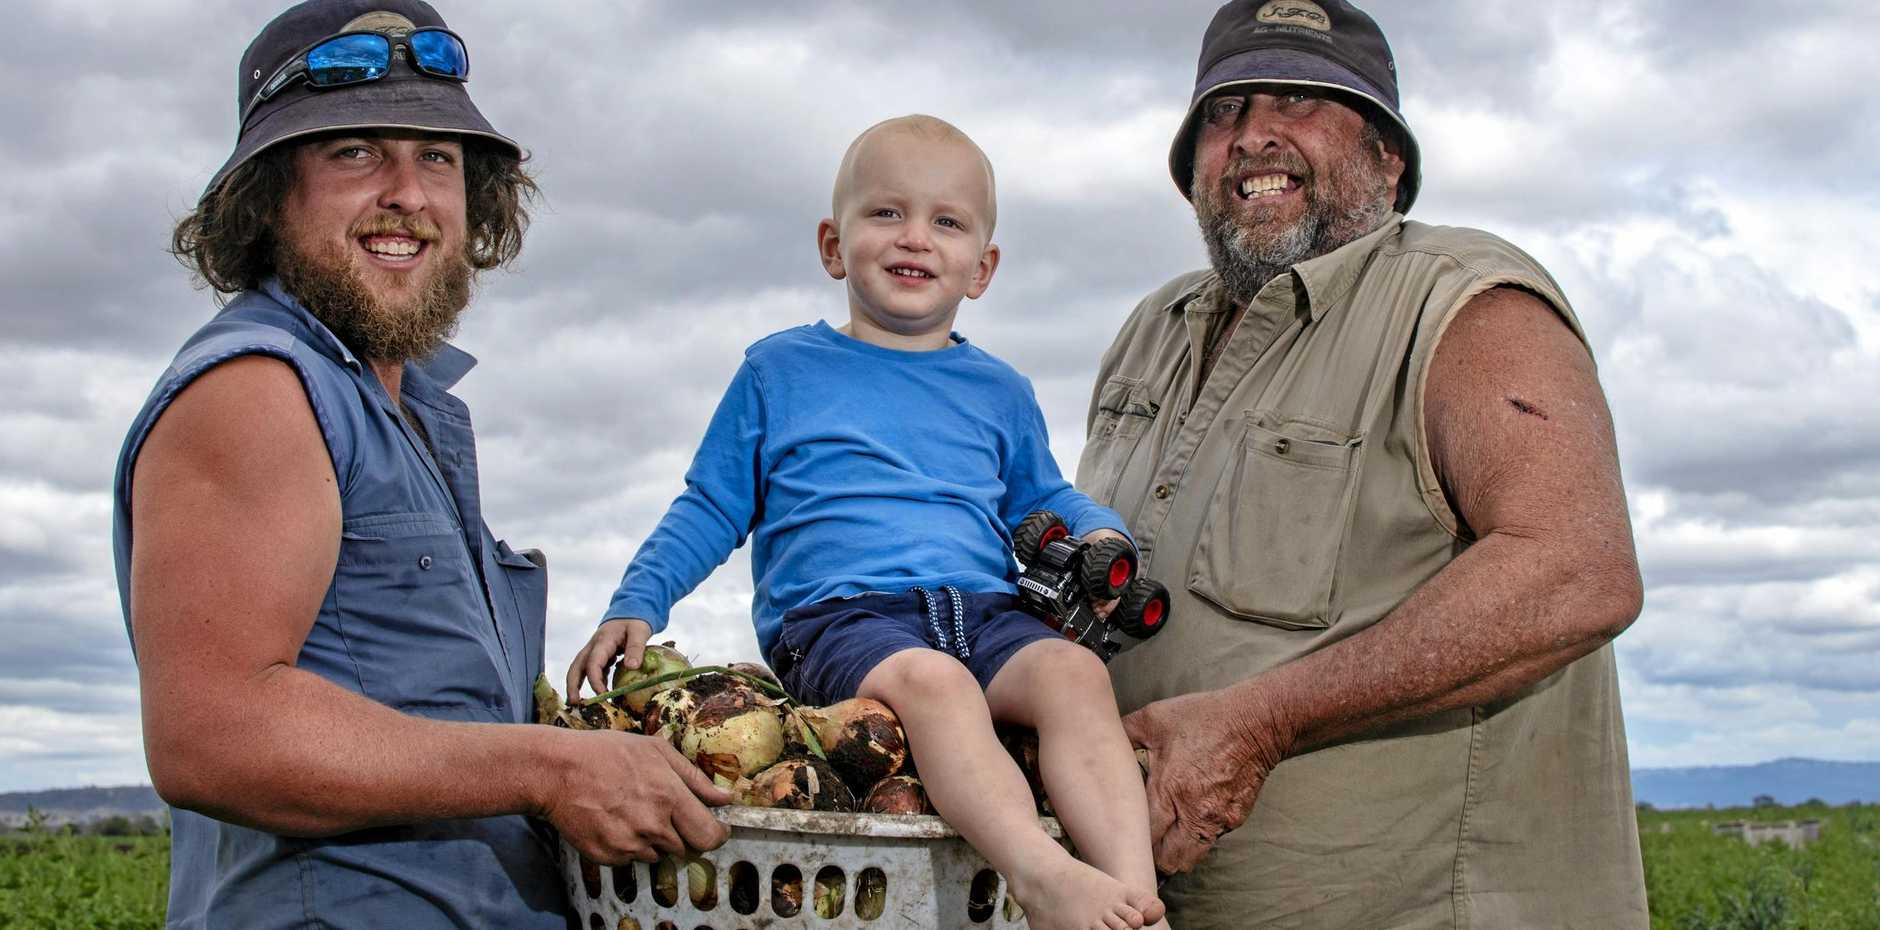 Three generations of farmers, Andrew, Cooper, 2, and Chris Mildren, Reck Farms, Lower Tent Hill.